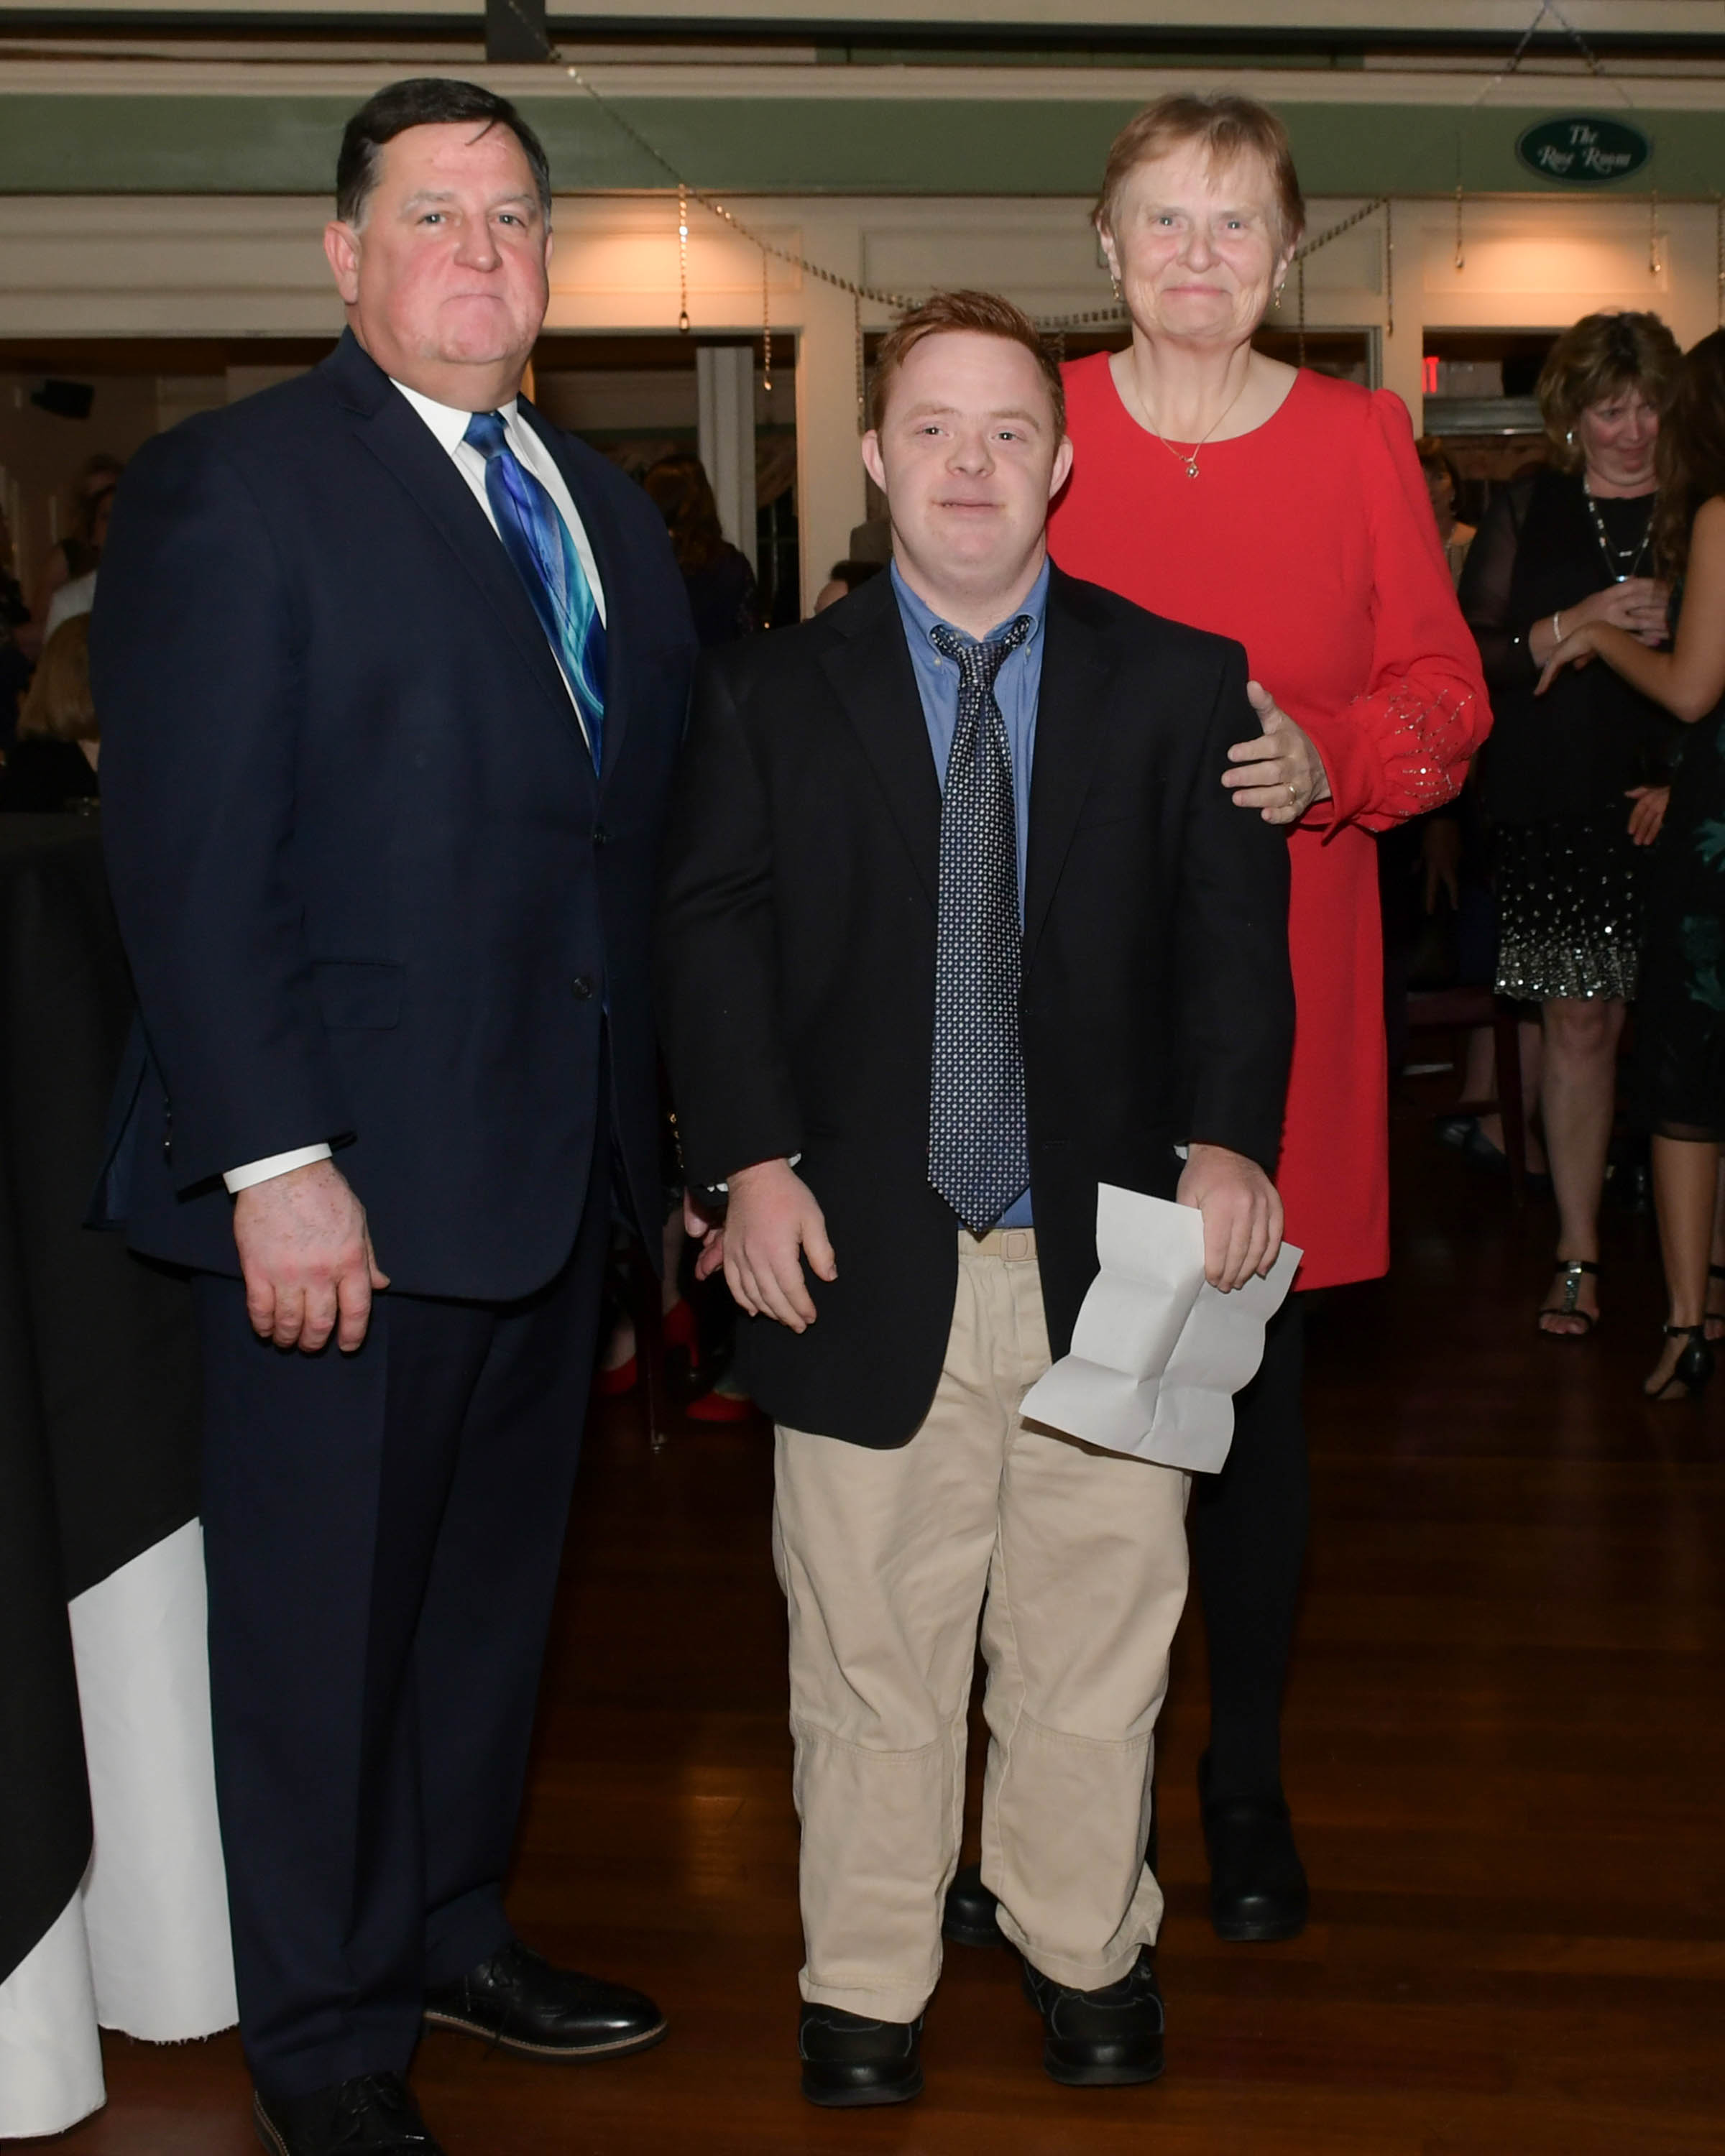 Vin Le Soir to benefit AIM Services, Inc. executive directors with speaker Connor